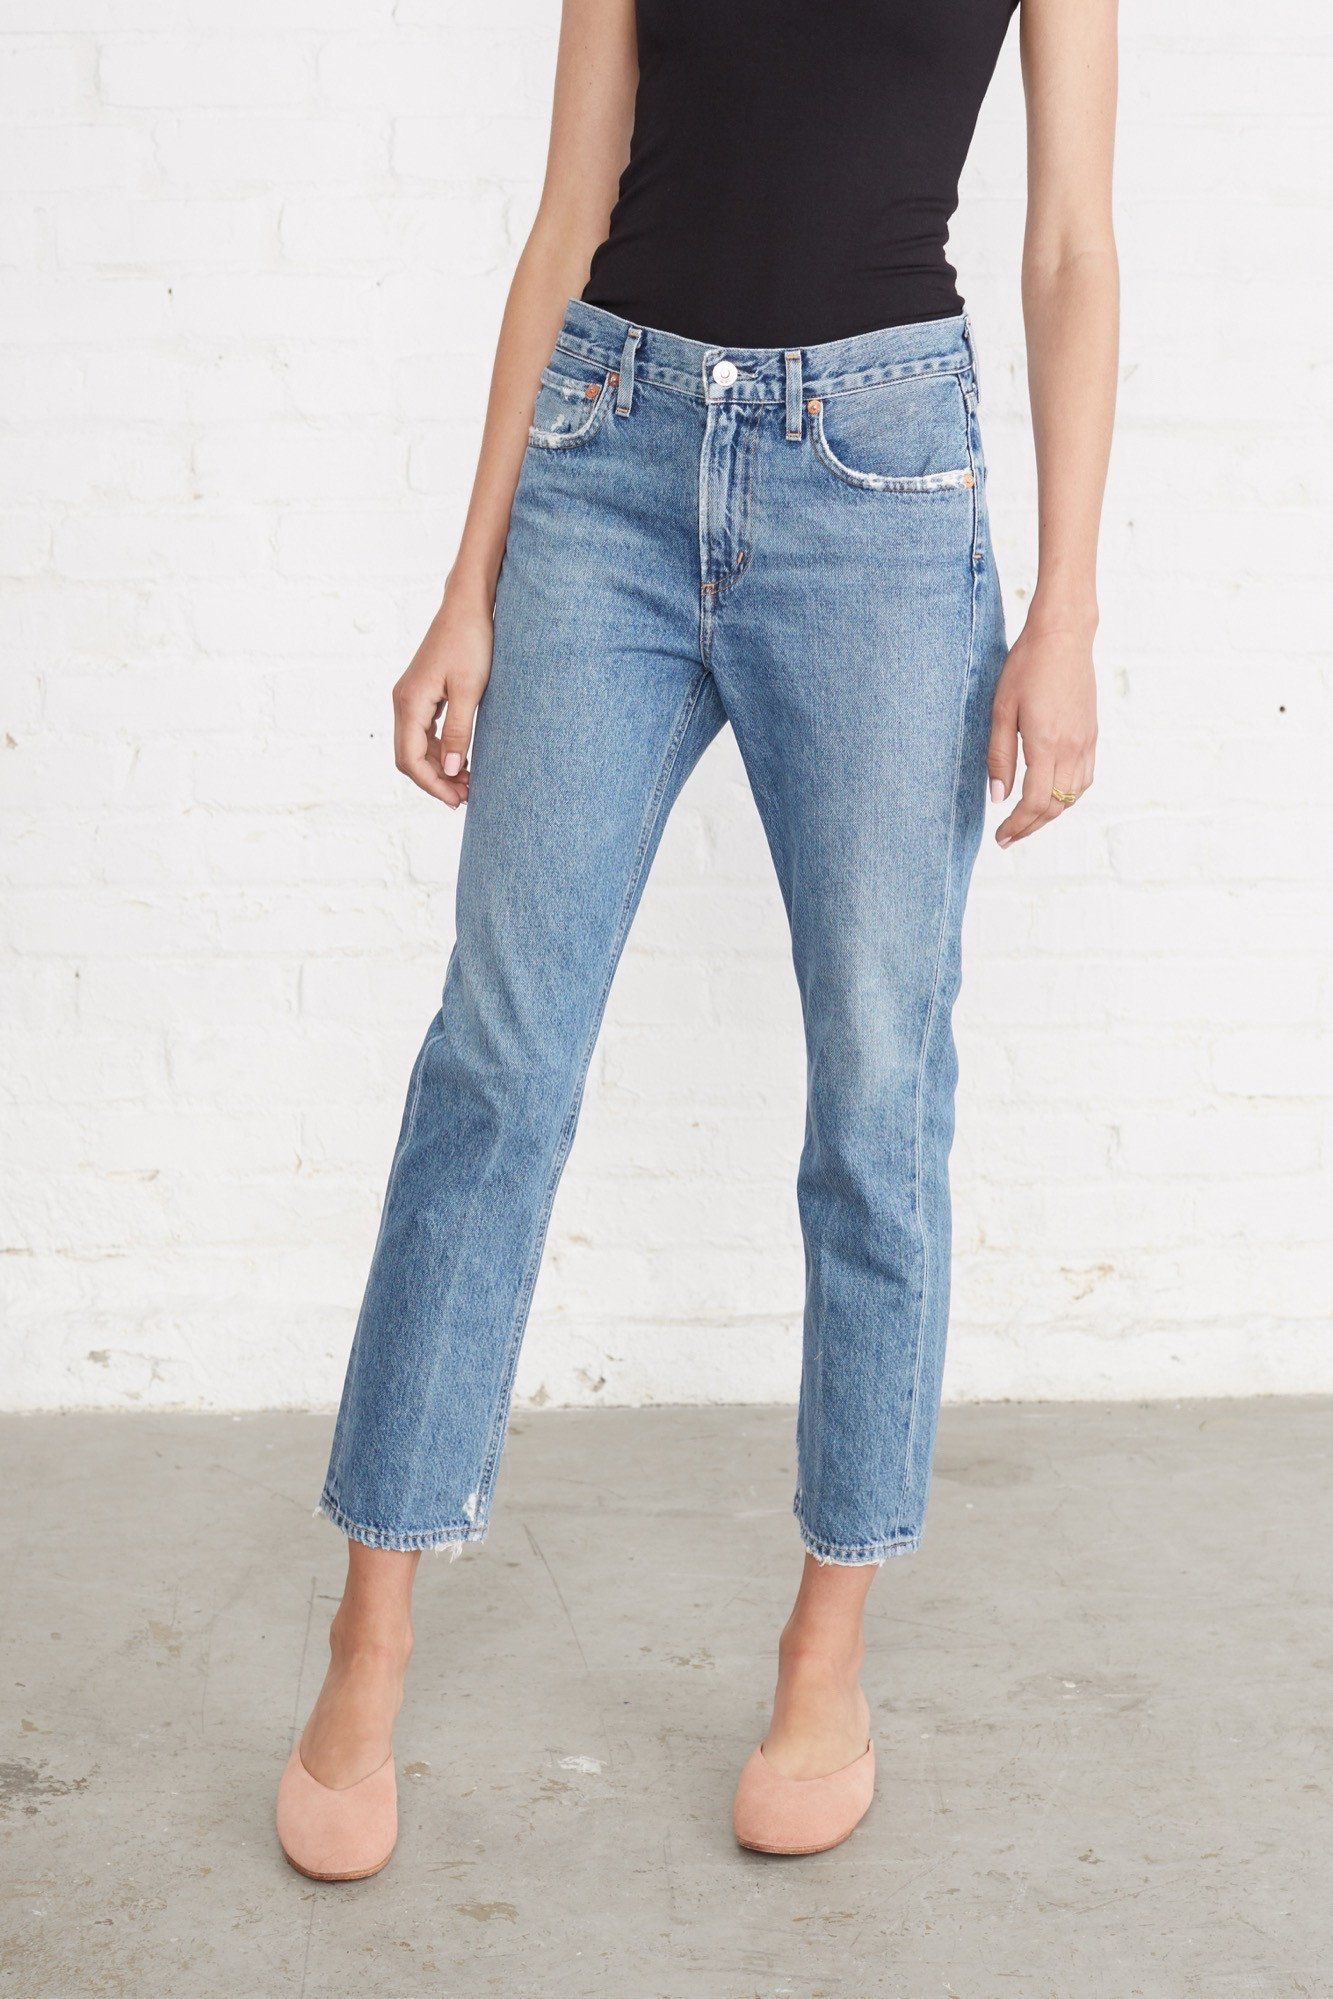 Best Jeans For Women Mom Jeans For Thick Thighs